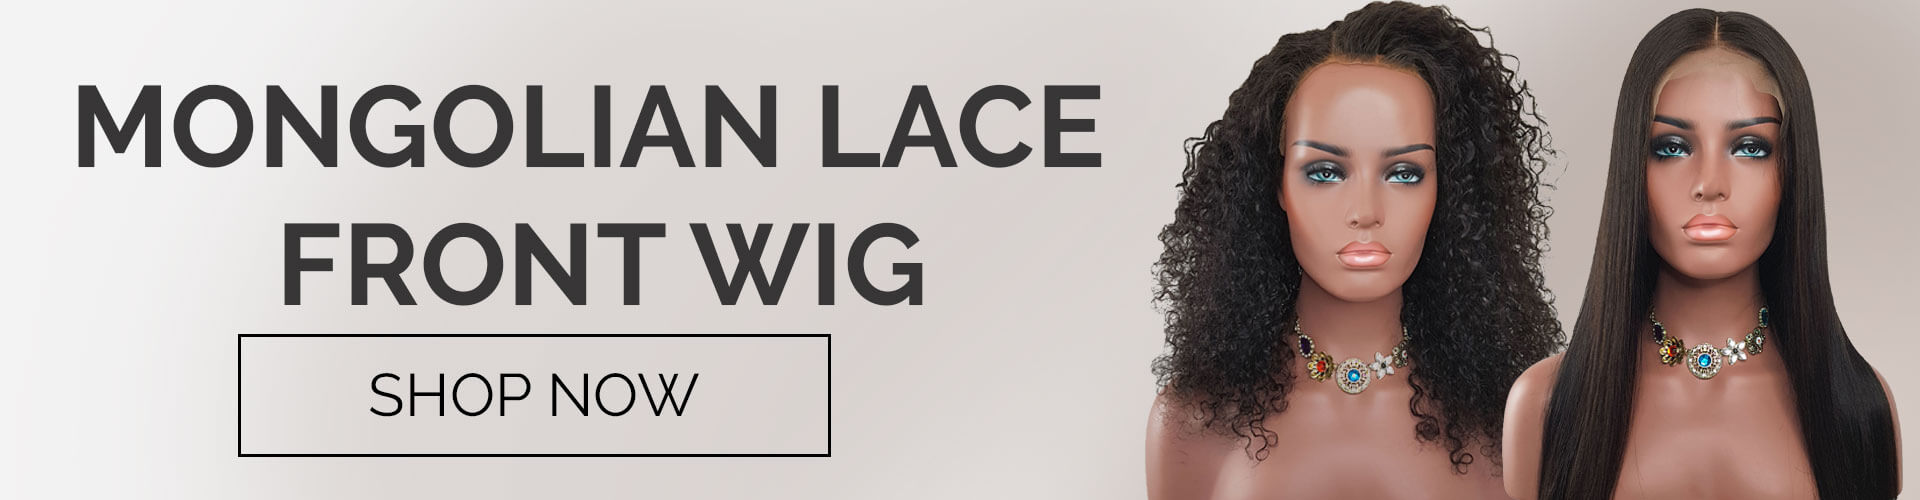 Mongolian Lace Front Wigs